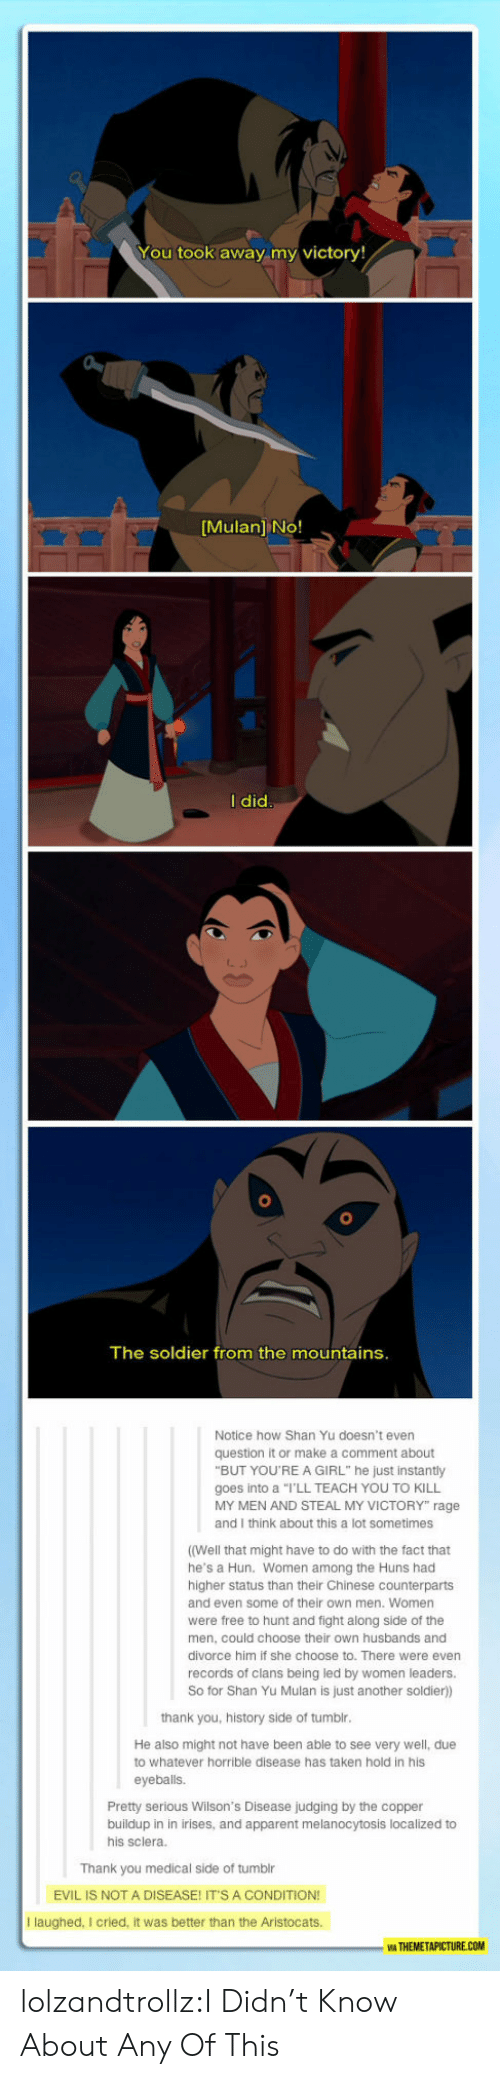 "Mulan, Taken, and Tumblr: You took away my victory!  [Mulan] No!  I did  The soldier from the mountains.  Notice how Shan Yu doesn't even  question it or make a comment about  ""BUT YOU'REA GIRL"" he just instantly  goes into a ""I'LL TEACH YOU TO KILL  MY MEN AND STEAL MY VICTORY"" rage  and I think about this a lot sometimes  ((Well that might have to do with the fact that  he's a Hun. Women among the Huns had  higher status than their Chinese counterparts  and even some of their own men. Women  were free to hunt and fight along side of the  men, could choose their own husbands and  divorce him if she choose to. There were even  records of clans being led by women leaders.  So for Shan Yu Mulan is just another soldier))  thank you, history side of tumblr.  He also might not have been able to see very well, due  to whatever horrible disease has taken hold in his  eyeballs.  Pretty serious Wilson's Disease judging by the copper  buildup in in irises, and apparent melanocytosis localized to  his sclera.  Thank you medical side of tumblr  EVIL IS NOT A DISEASE! IT'S A CONDITION!  I laughed, I cried, it was better than the Aristocats.  WA THEMETAPICTURE.COM lolzandtrollz:I Didn't Know About Any Of This"